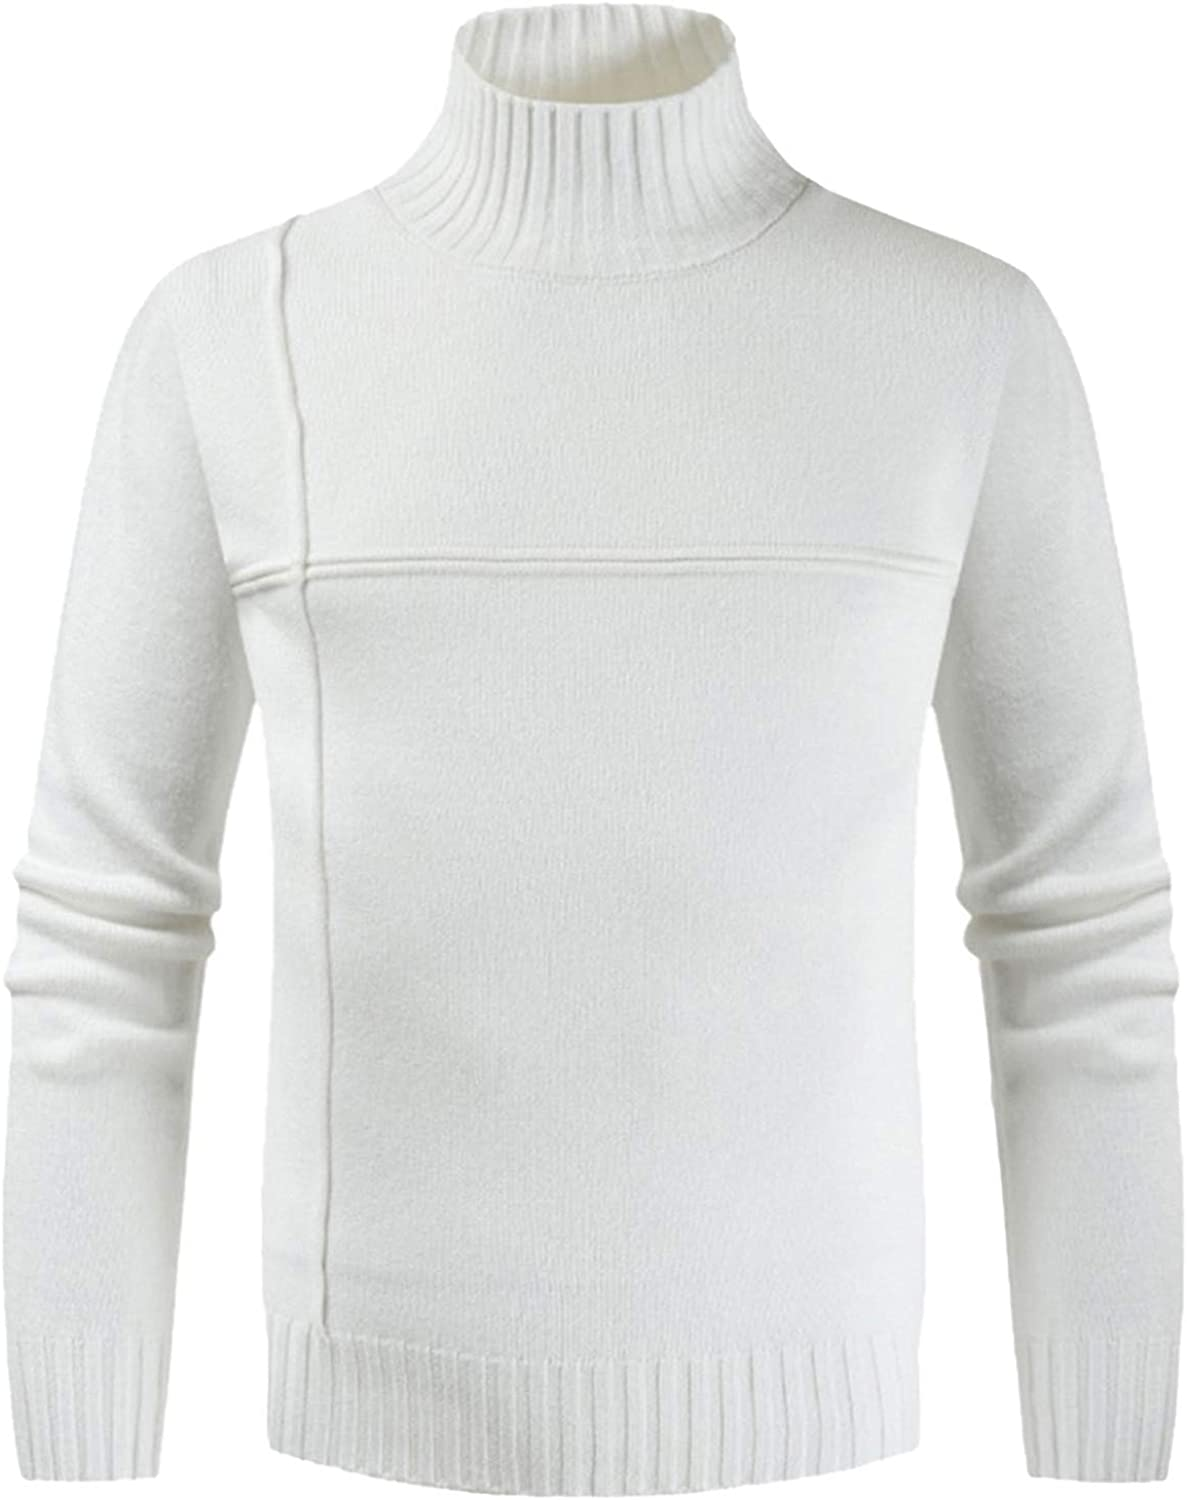 ZSBAYU Men's Turtleneck Pullover Sweaters Knitwear Fashion Slim Fit Sweater Base Layer Shirts Bottoming Shirt Jumpers